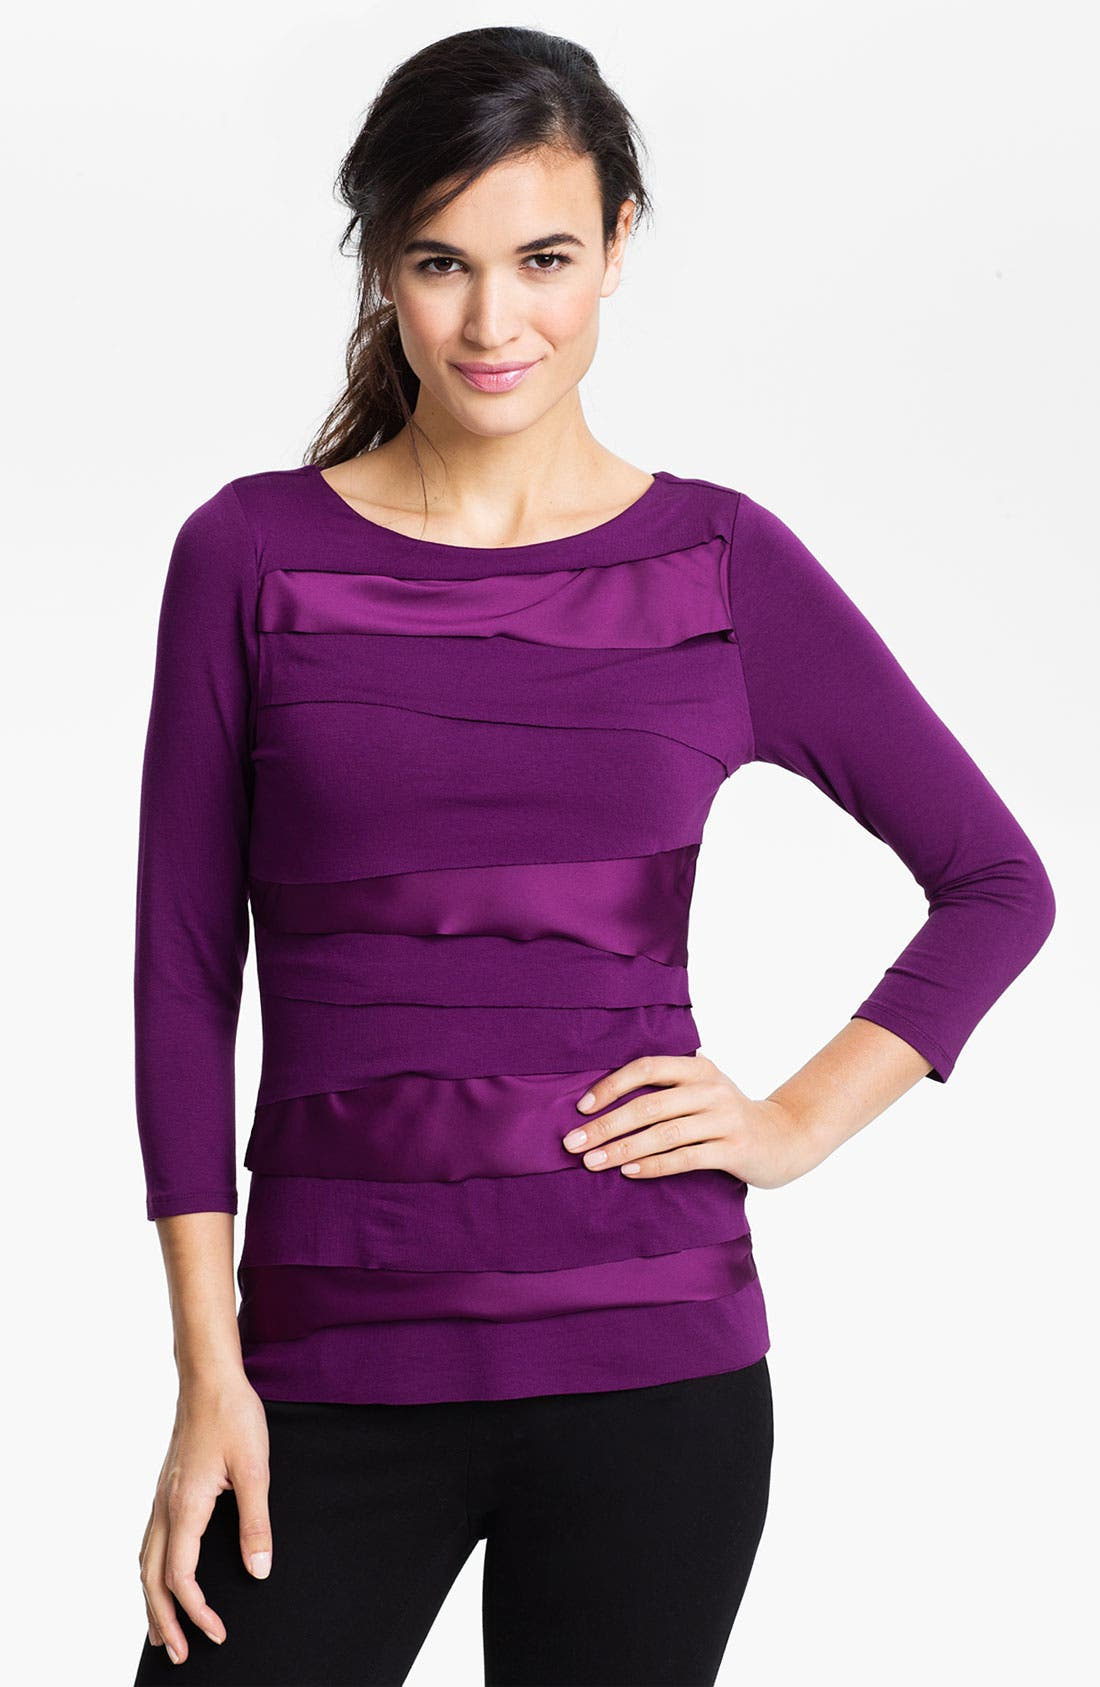 Alternate Image 1 Selected - Vince Camuto Mix Media Zigzag Top (Petite)